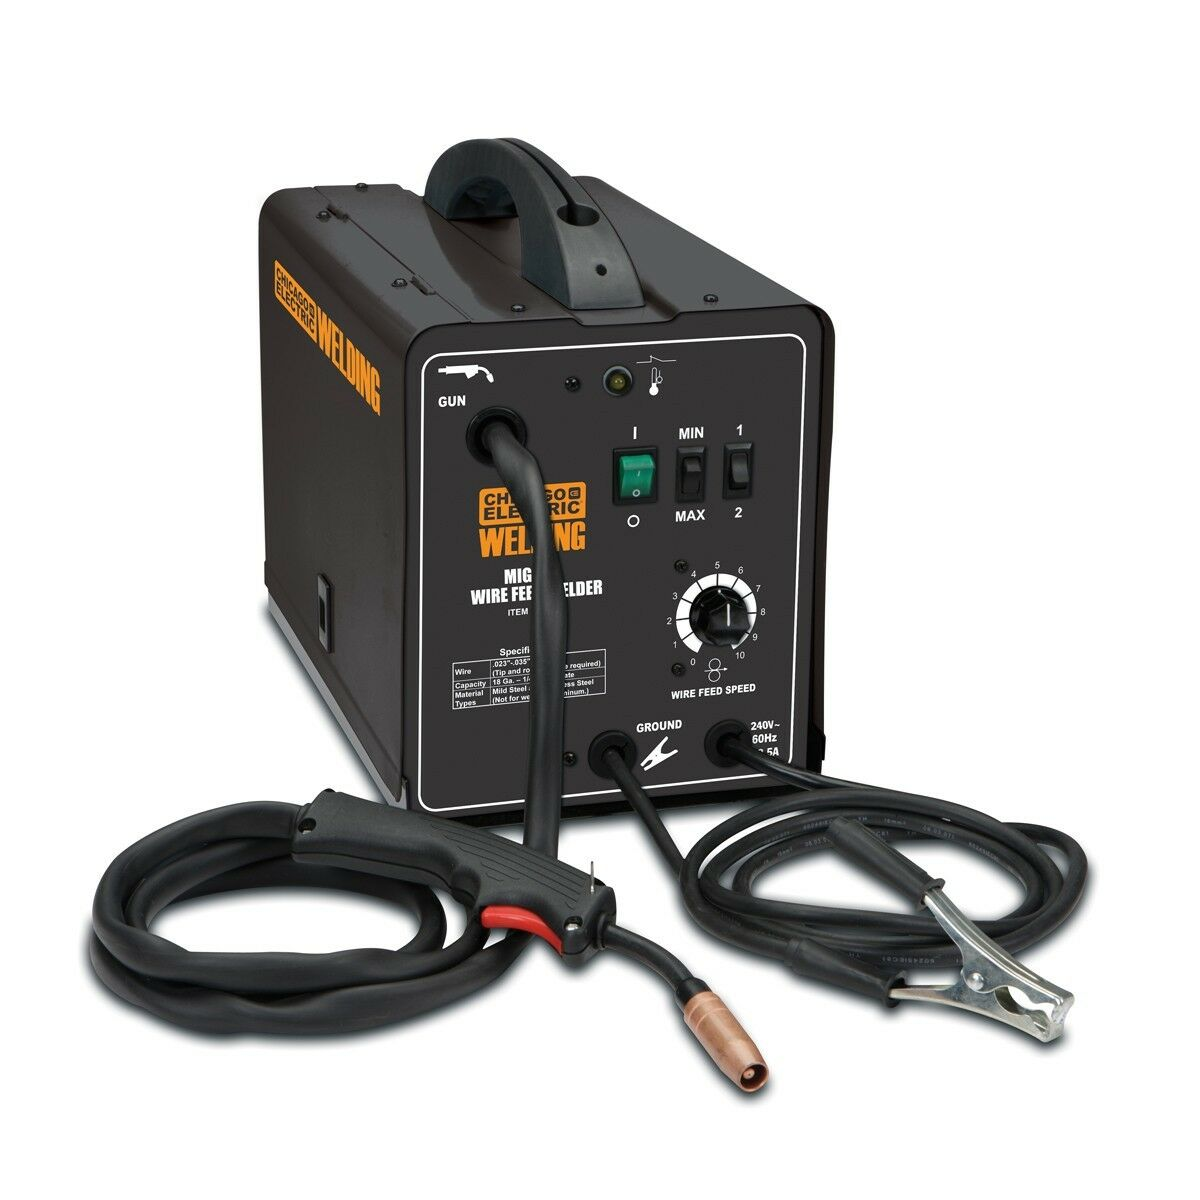 s l1600 chicago electric welder ebay wiring diagram for chicago electric welder at edmiracle.co